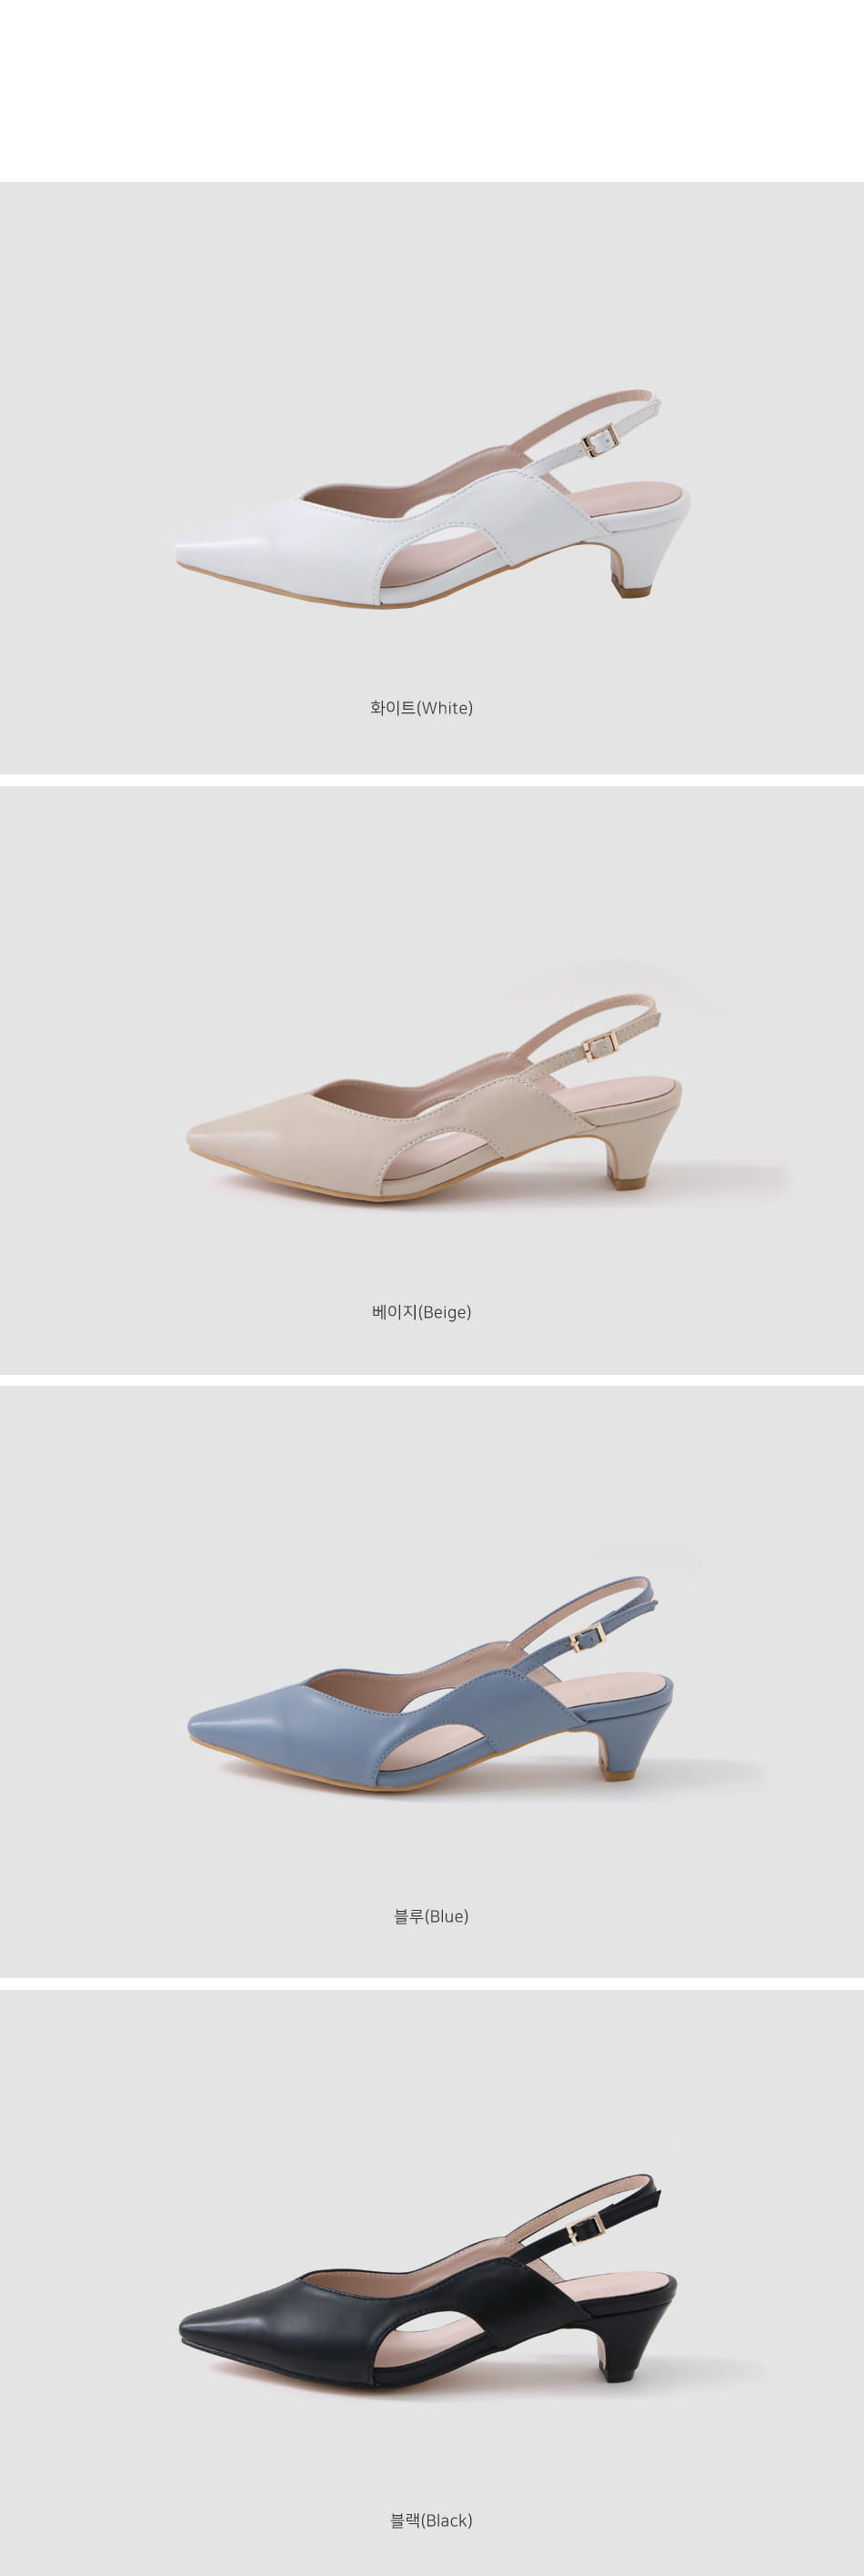 El Dorado Mid Hill Pumps 4.5cm